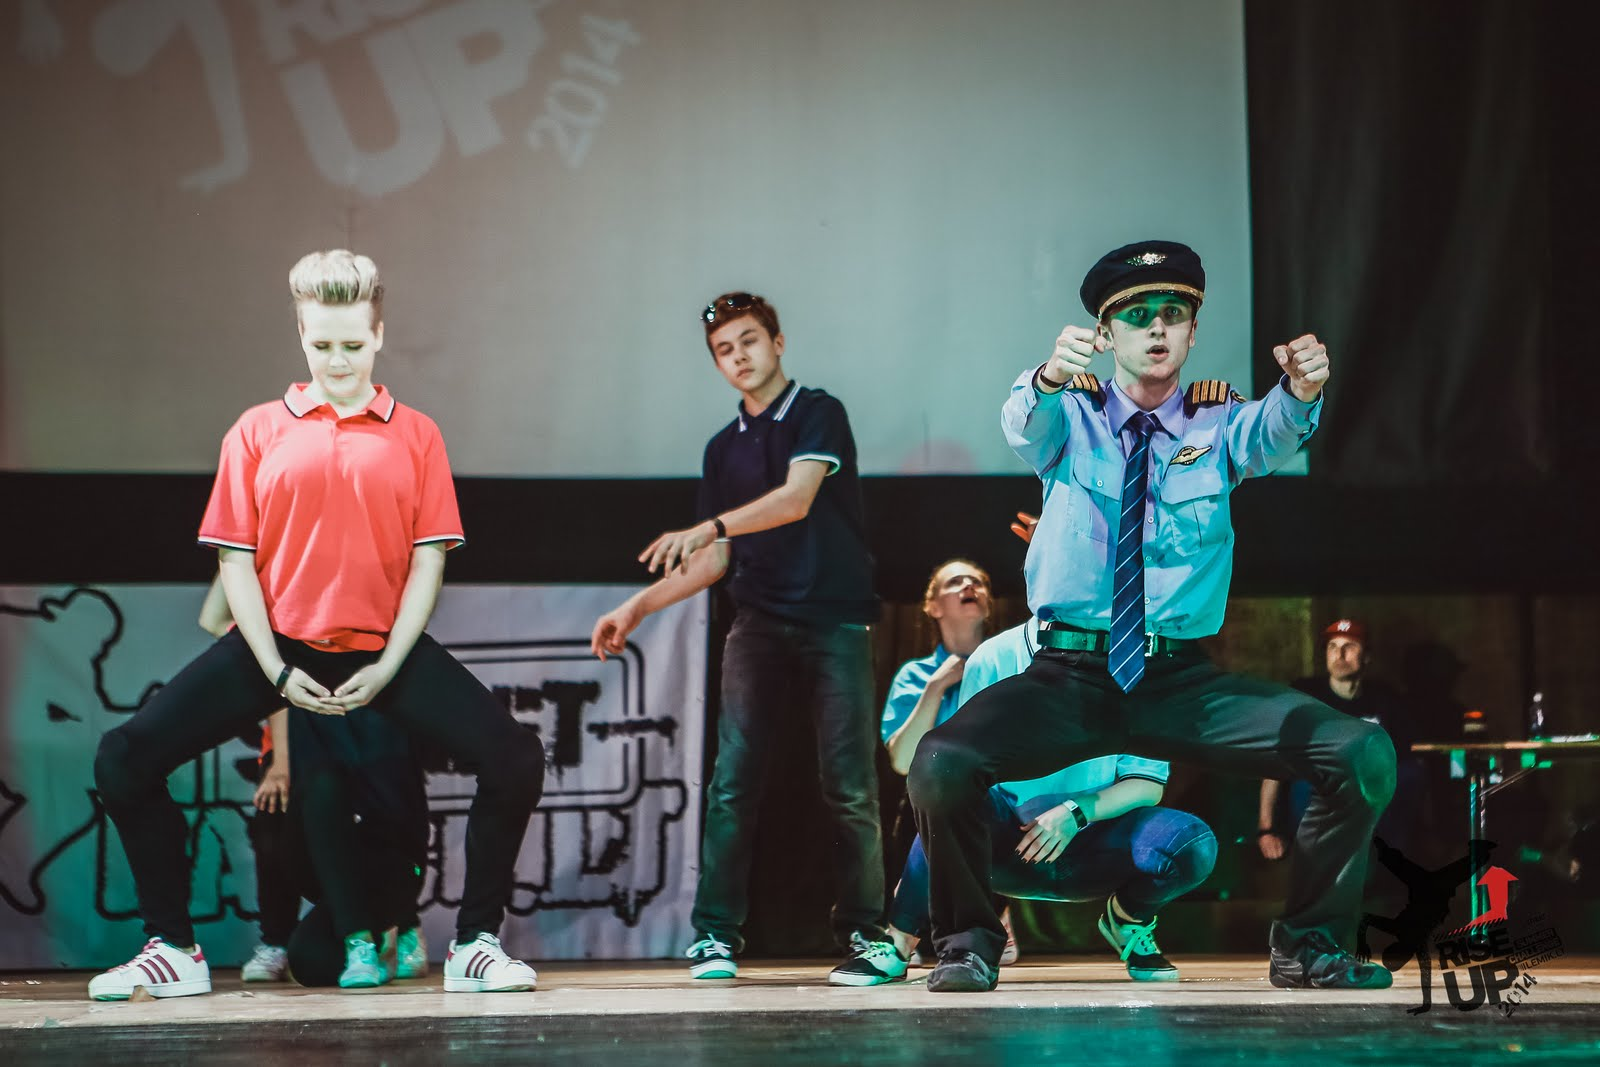 SKILLZ at RISEUP 2014 - _MG_7010.jpg